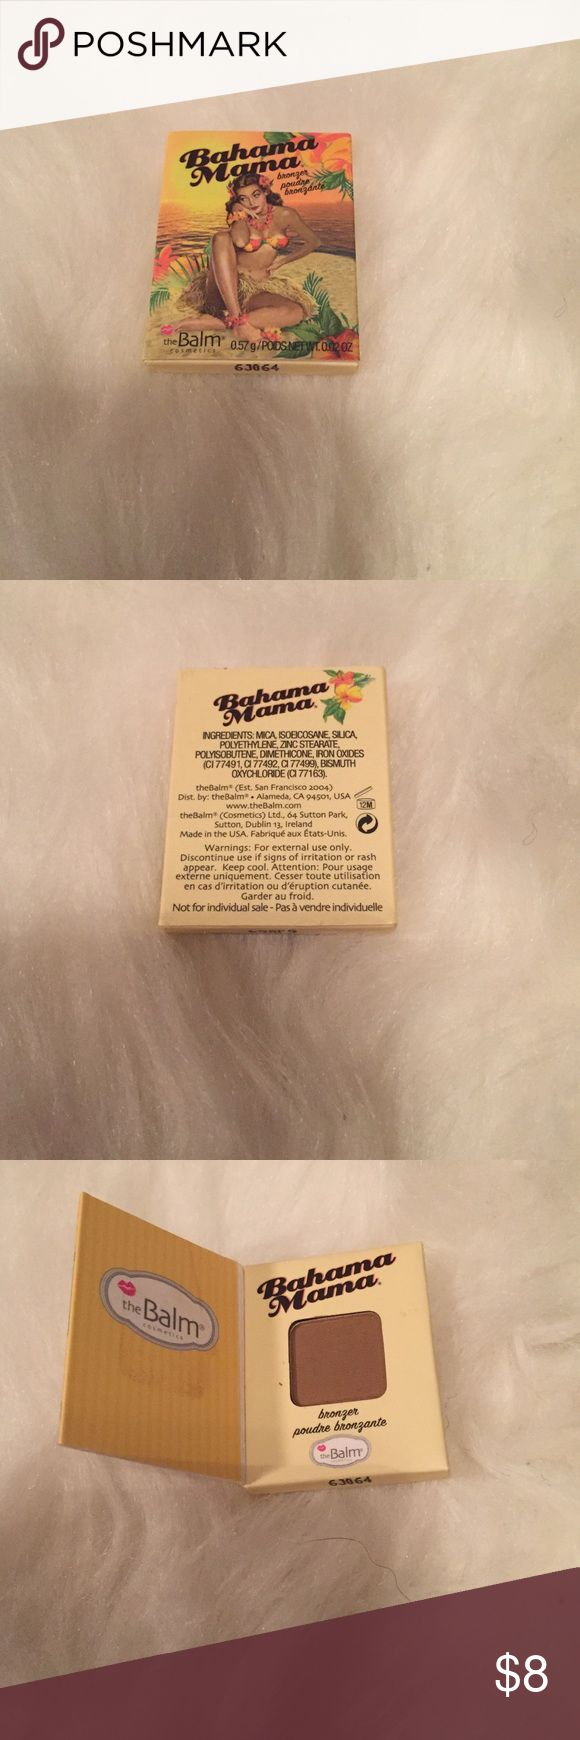 The Balm Bahama Mama Bronzer The Balm Bahama Mama Bronzer. New never used. Sample/Travel size. Net wt 0.02 oz Makeup Bronzer